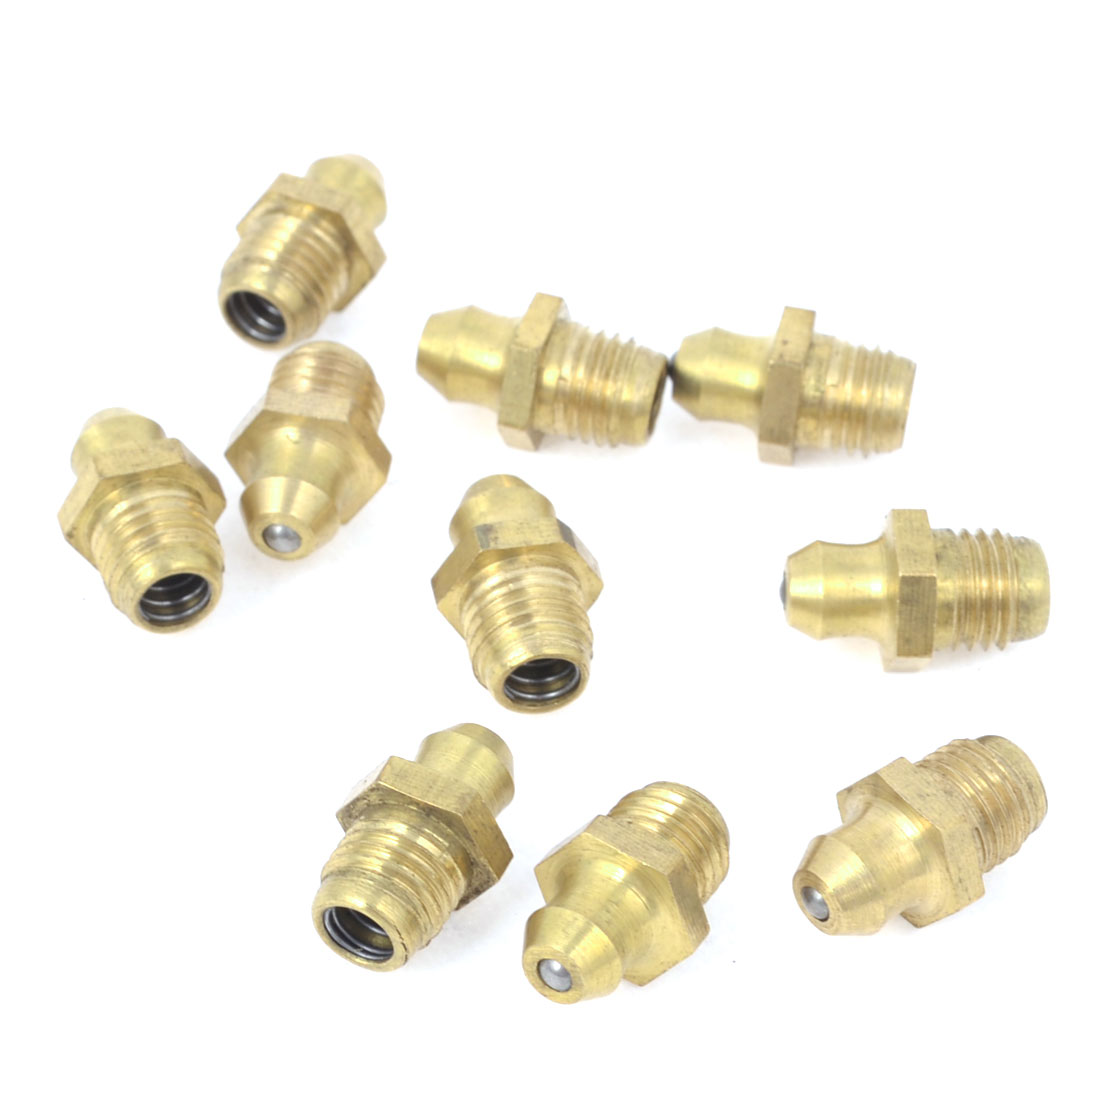 10 Pcs Gold Tone 8mm Dia Male Thread Straight Grease Nipples Fittings